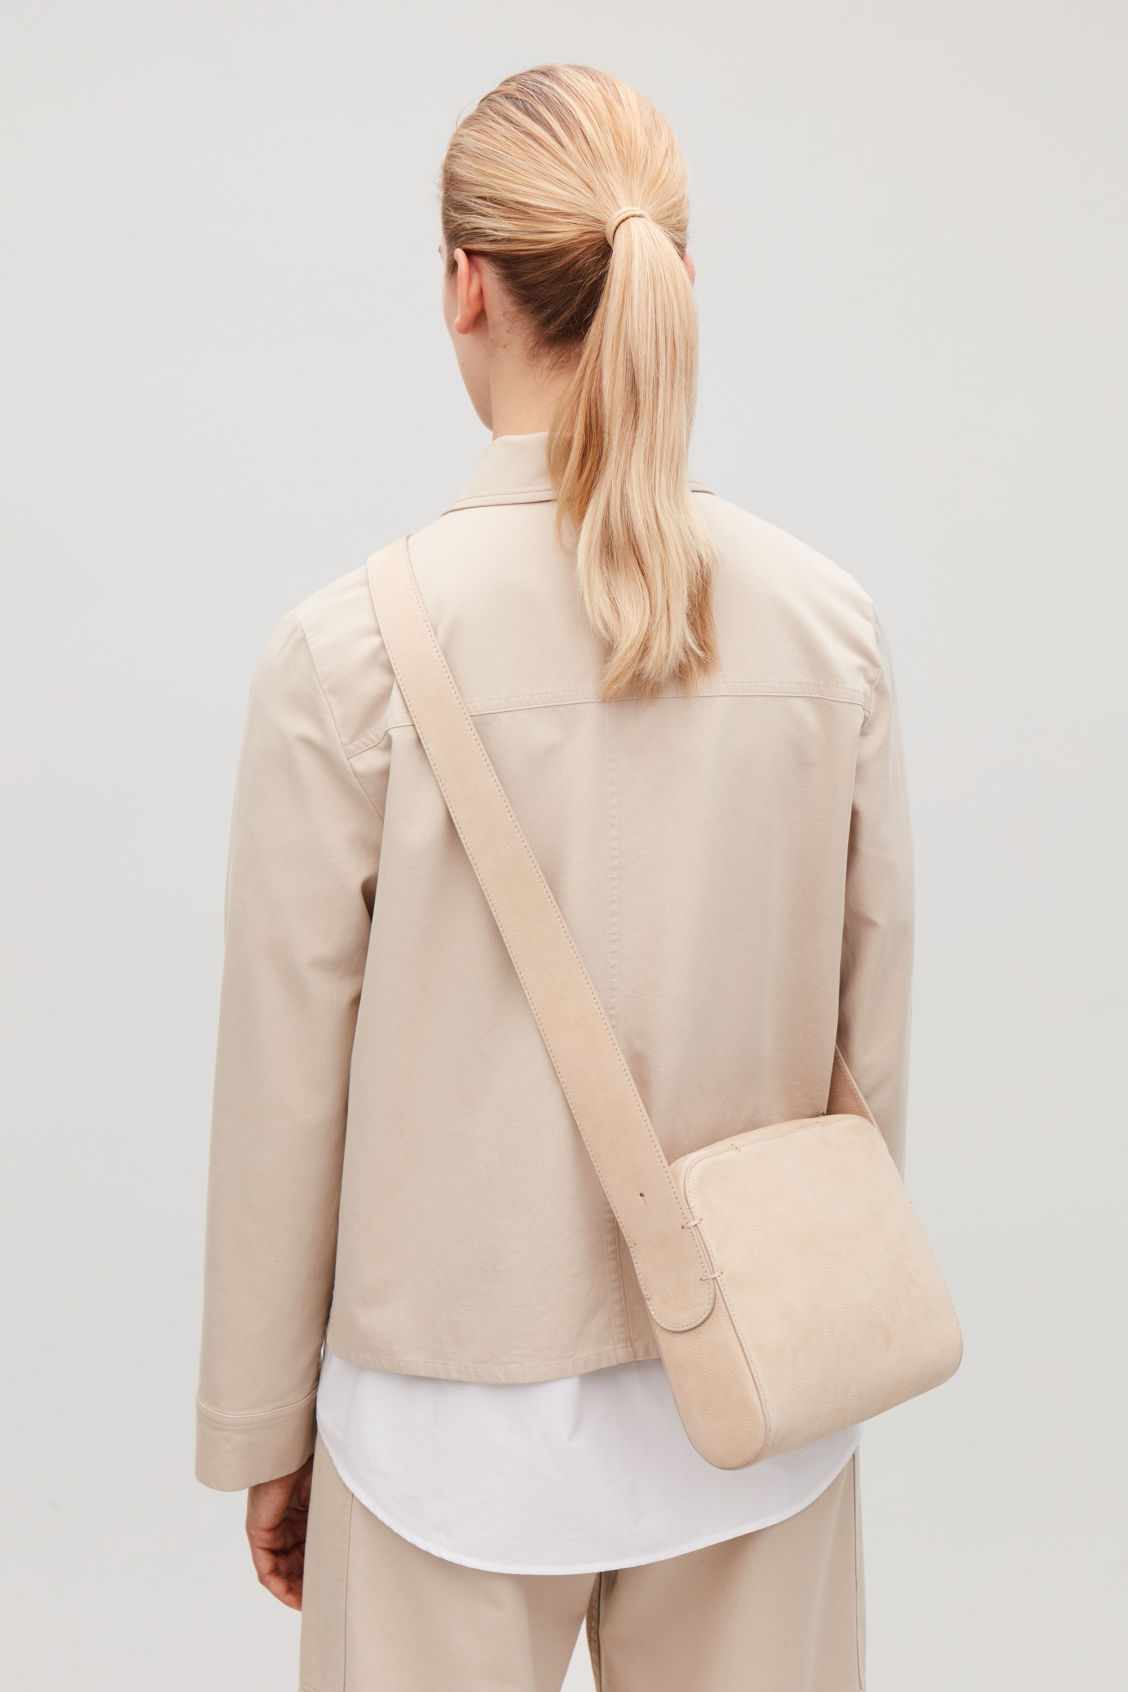 Detailed image of Cos nubuck leather shoulder bag in beige